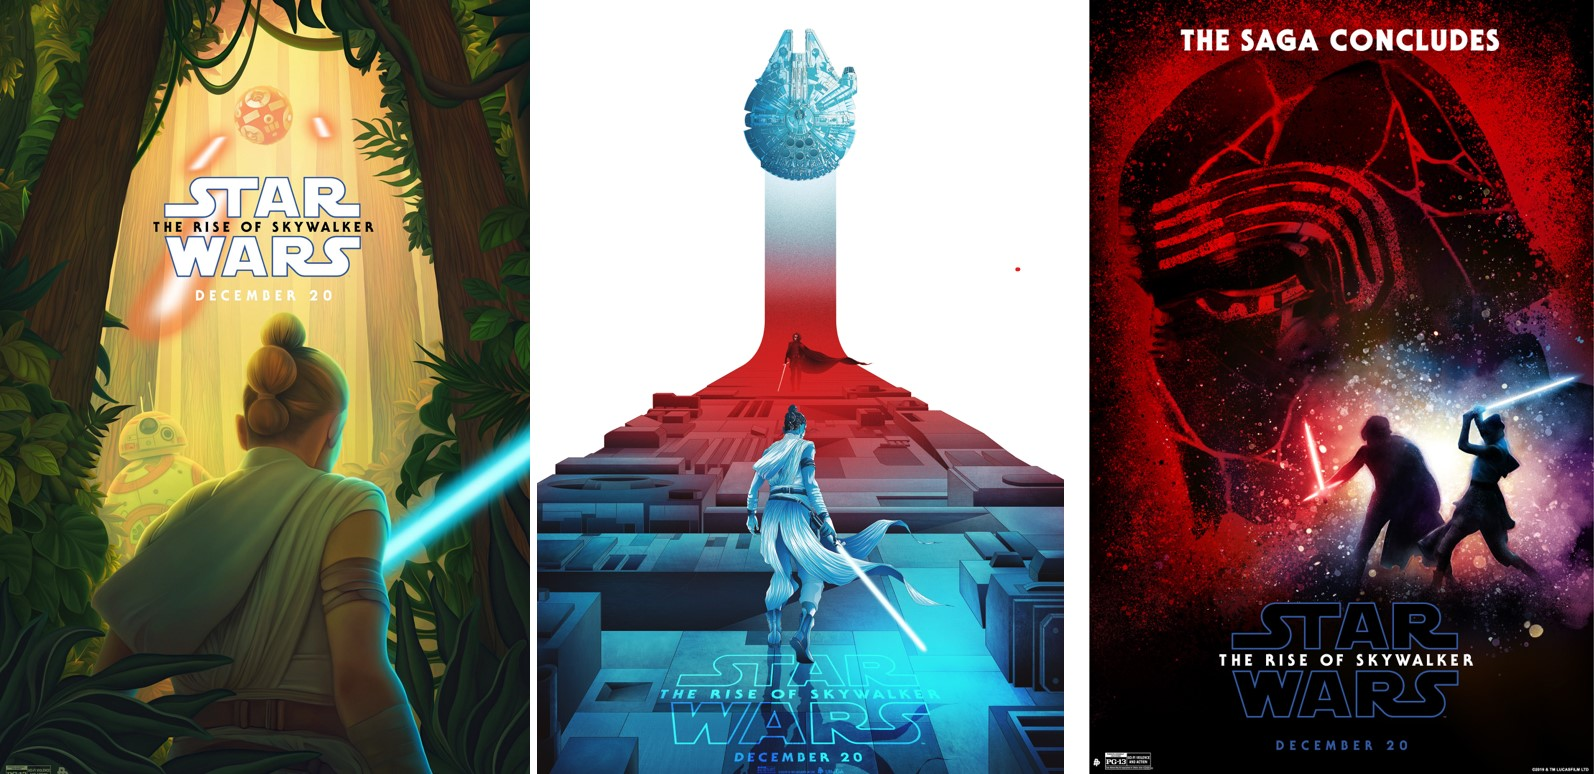 Seven Rise Of Skywalker Fan Art Posters Are Lucasfilm Approved Images I Can T Unsee That Movie Film News And Reviews By Jeff Huston